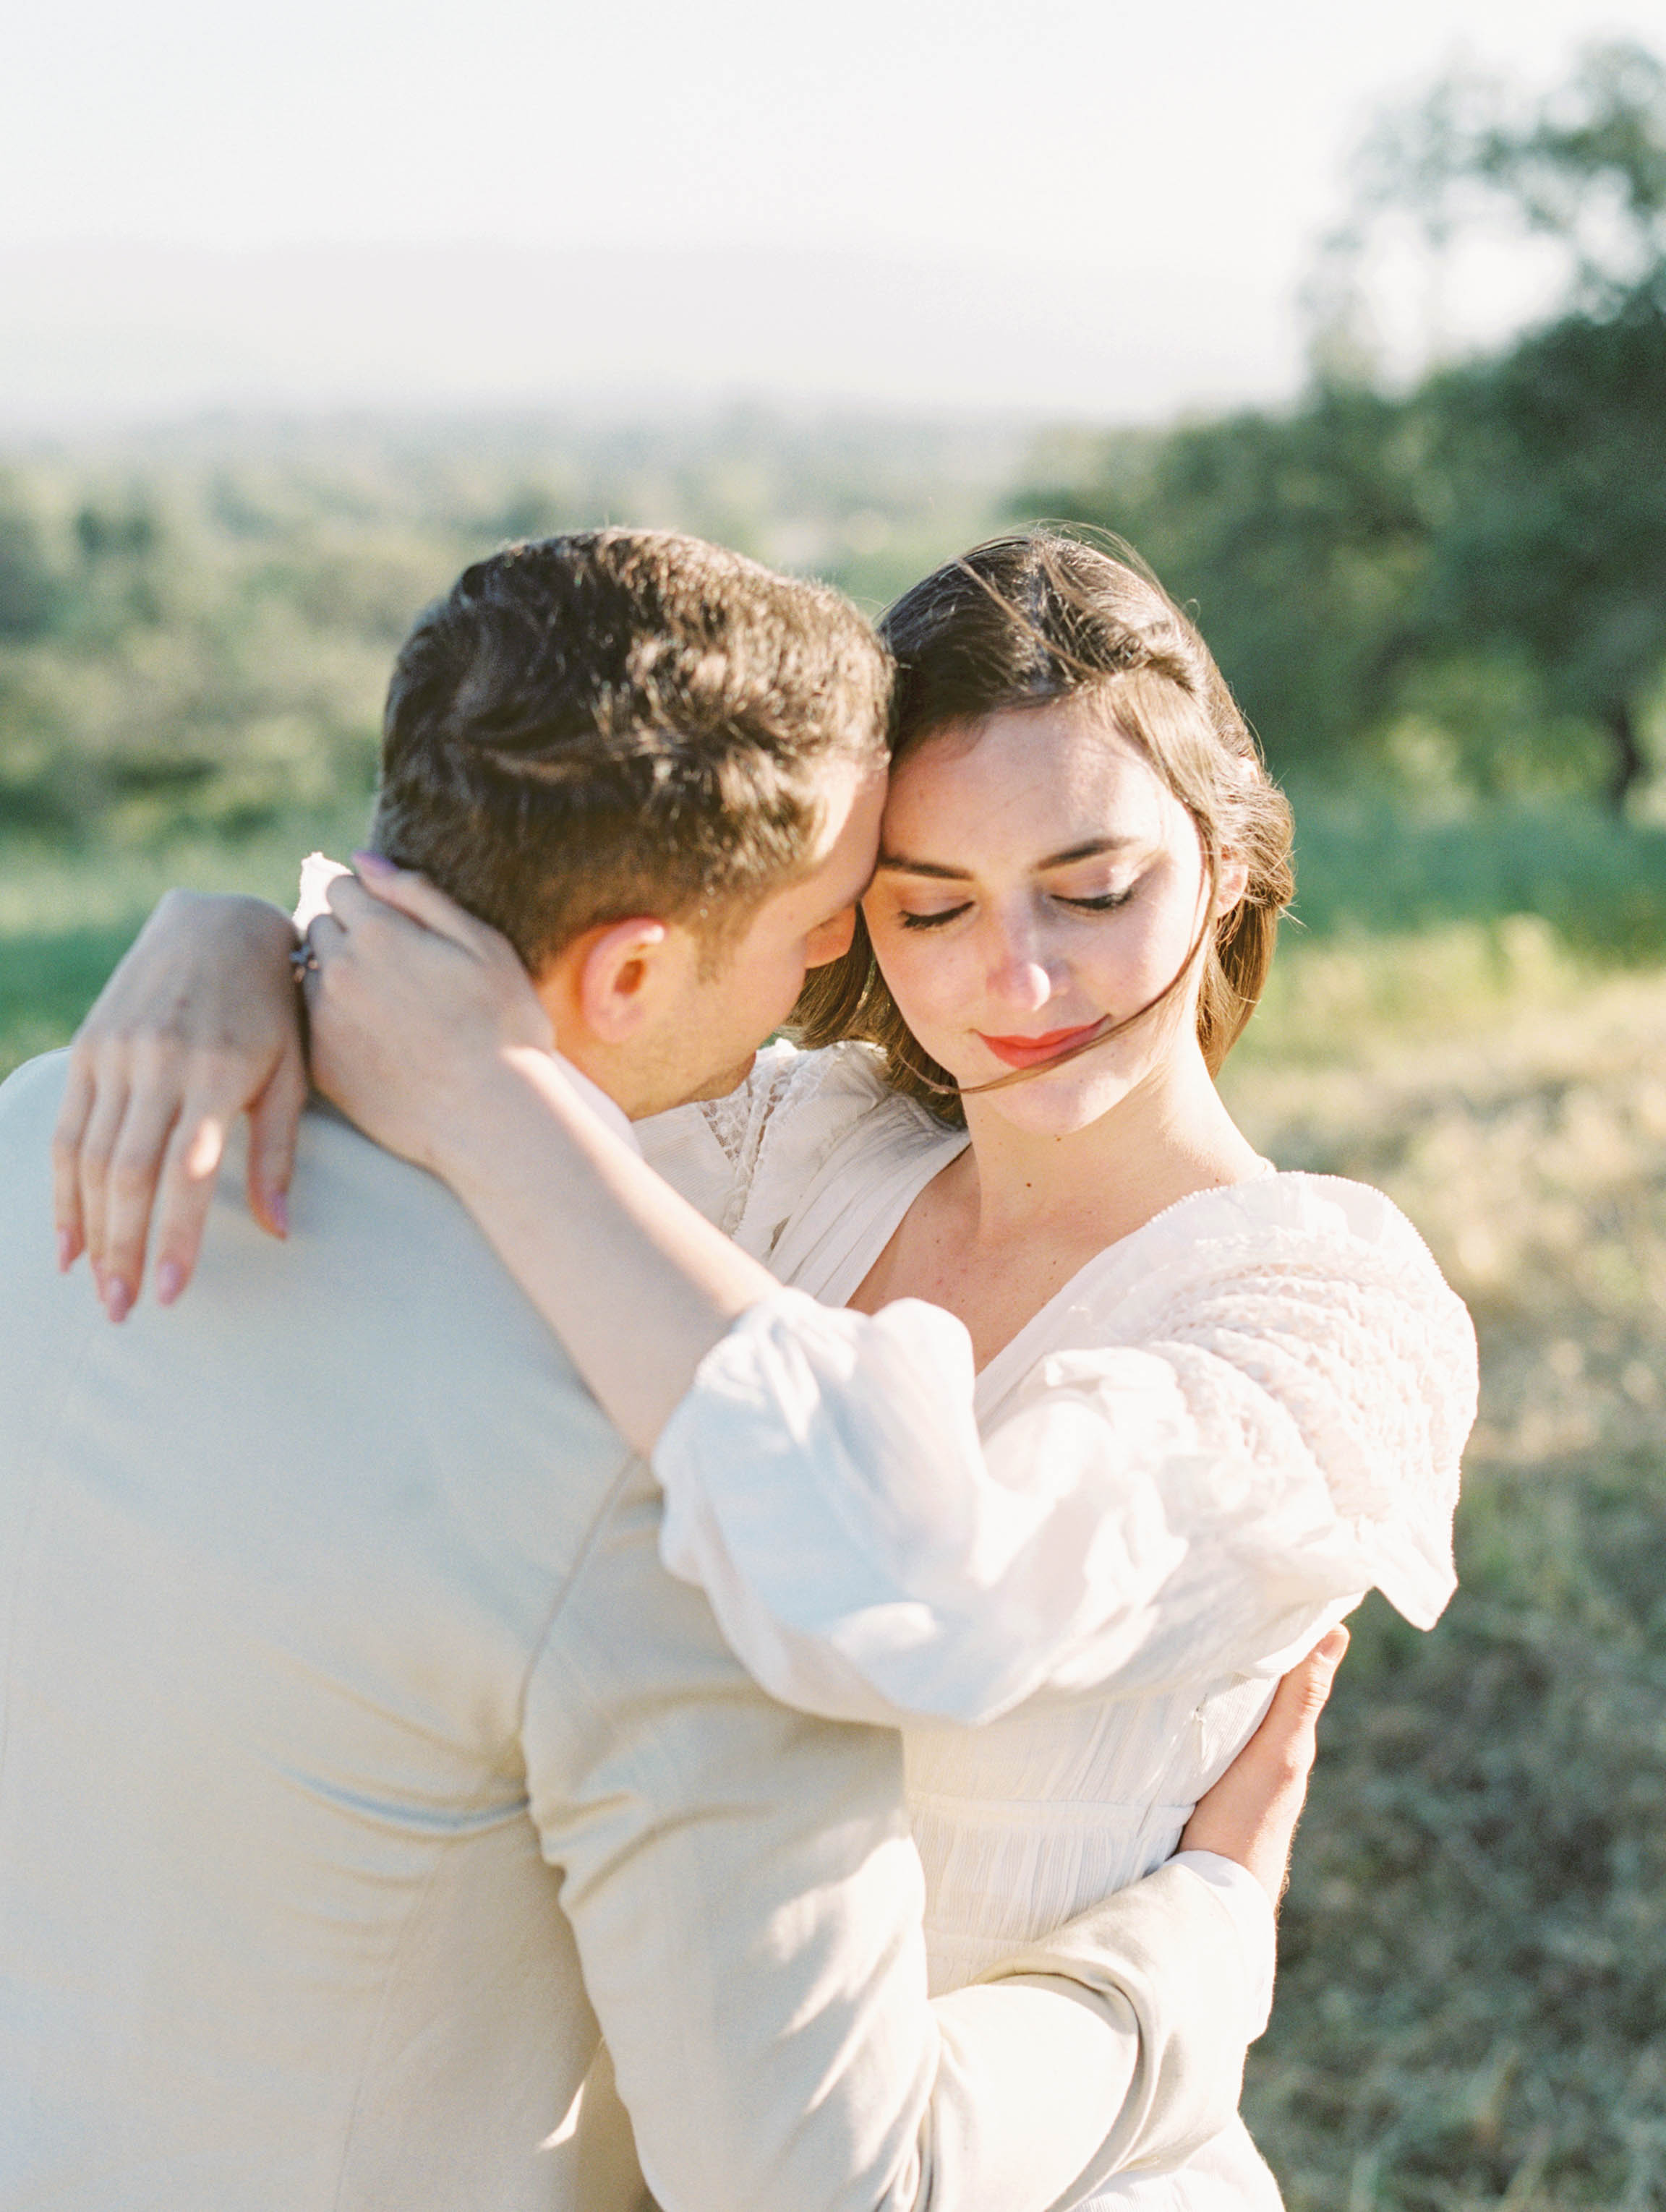 (C) Kelsey Cowley Photography. Kelsey is a published photographer based in California, photographing destination weddings, portraits, and editorials throughout the world. Boy is looking at girl, girl has her arms around boy, girl is looking down, couple is standing in a field in Santa Ynez.